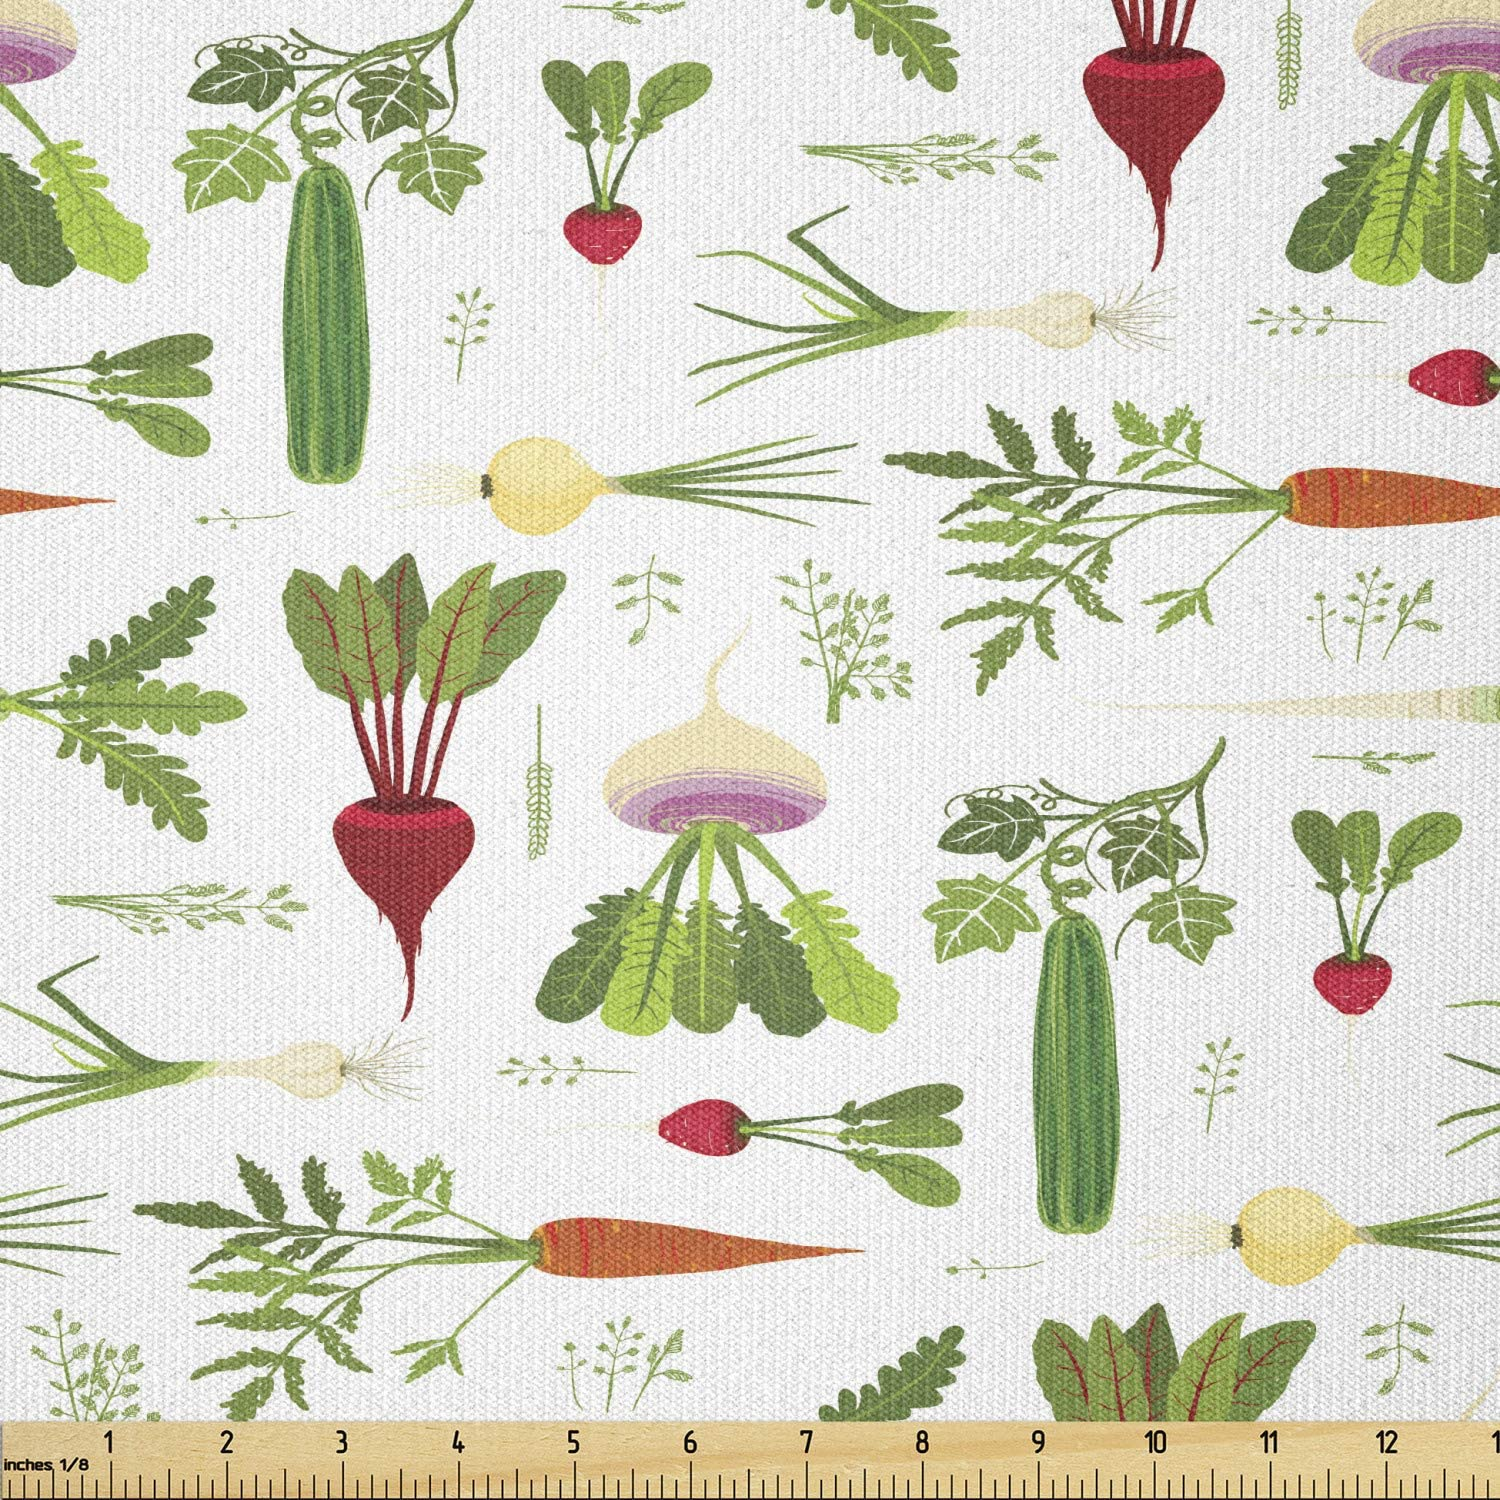 Ambesonne Vegetable Fabric by The Yard, Healthy Foods Pattern Cucumbers Carrots Garlic and Turnips Vegetarian Greens, Stretch Knit Fabric for Clothing Sewing and Arts Crafts, 1 Yard, Green Red